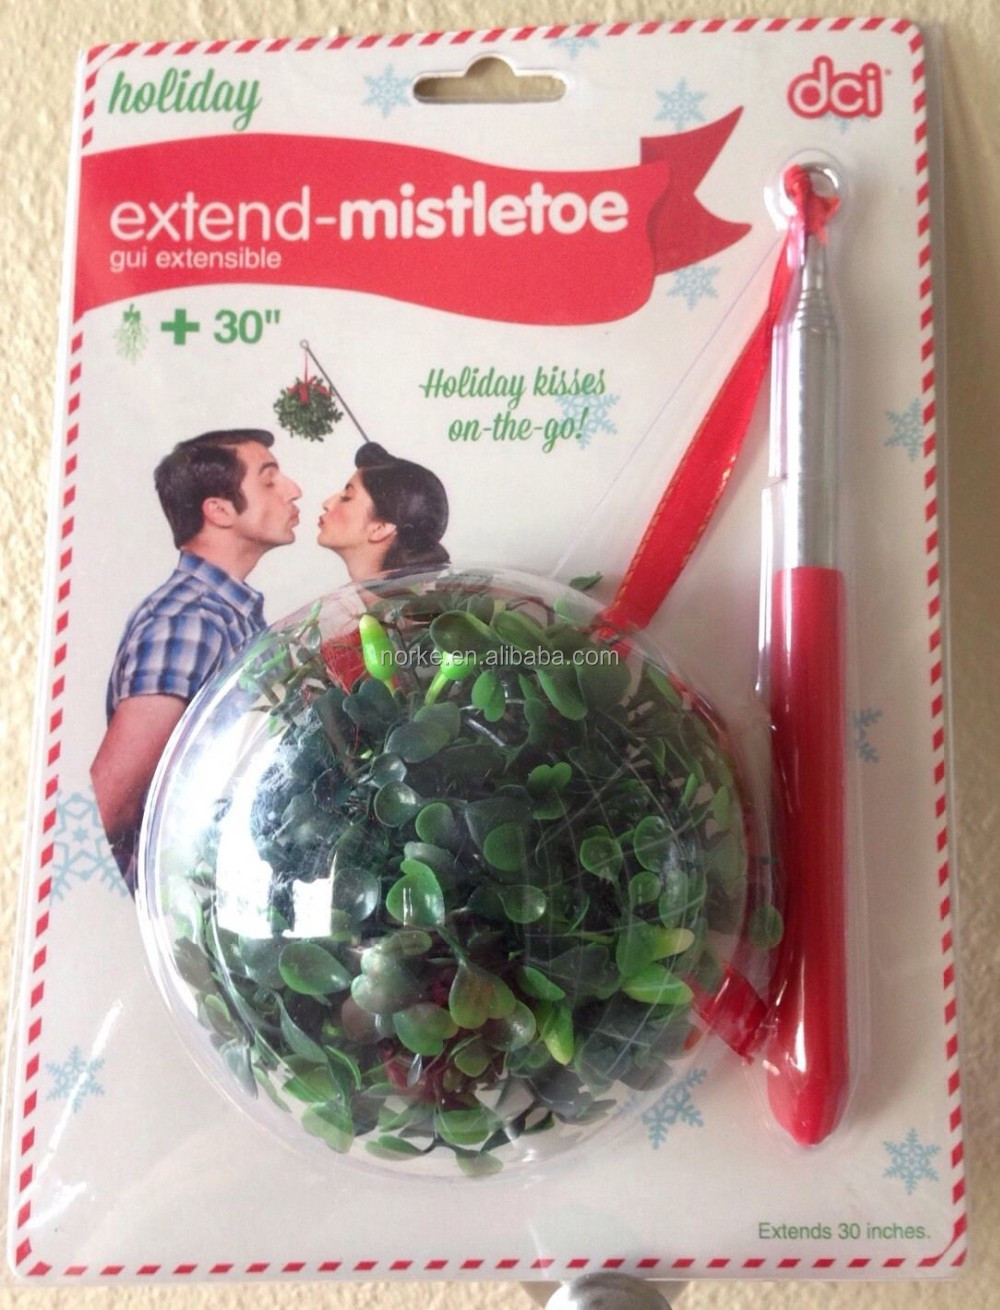 Extending Selfie Mistletoe Stick